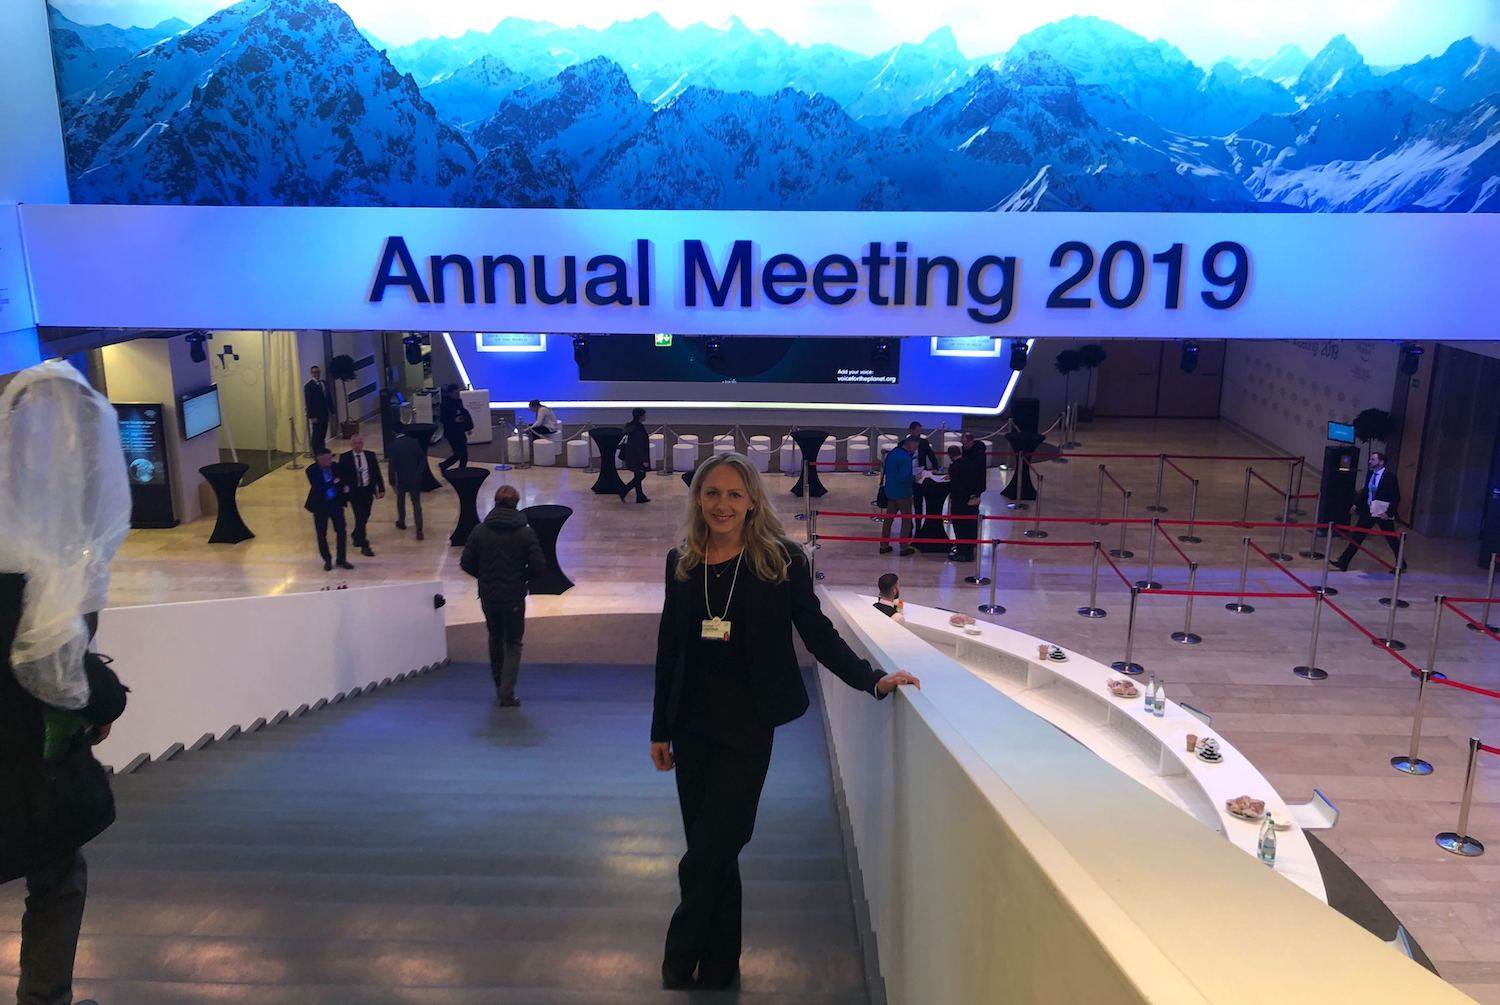 1928 Diagnostics CEO, Kristina Lagerstedt, standing in the big stairs at the Annual Meeting in Davos 2019.